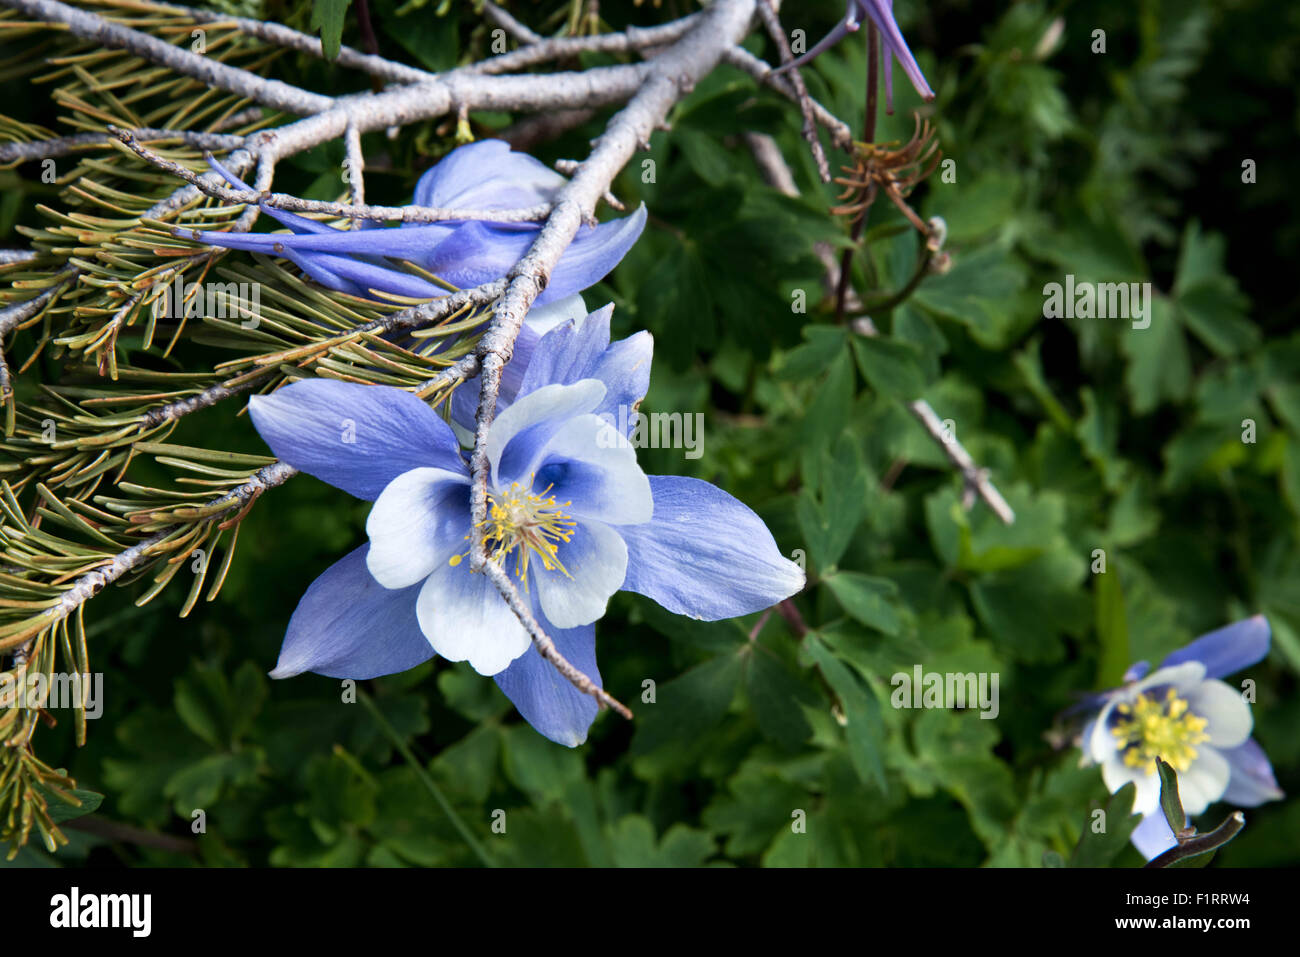 a field with rocky mountain blue columbine flowers stock photo, Beautiful flower